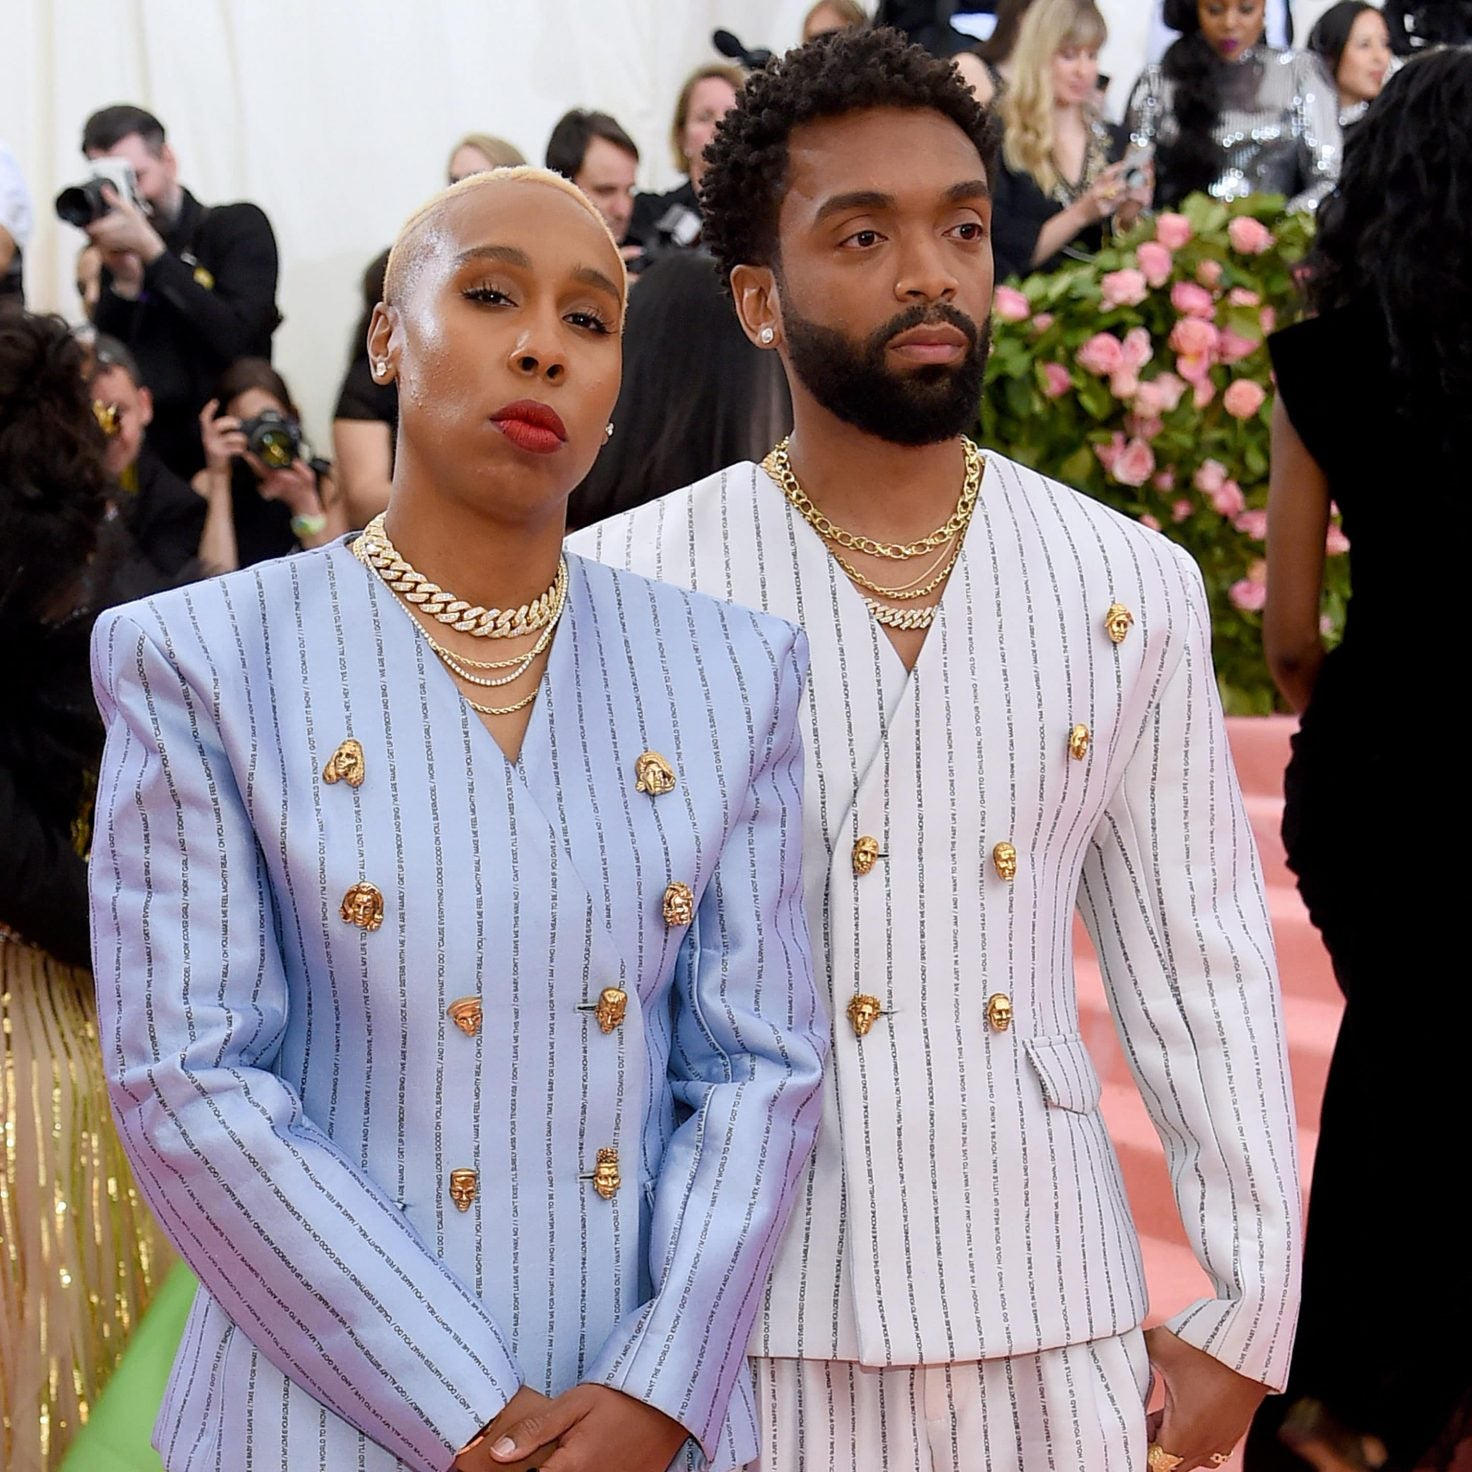 Lena Waithe honors Ru Paul and Black Drag Queens with Met Gala Look